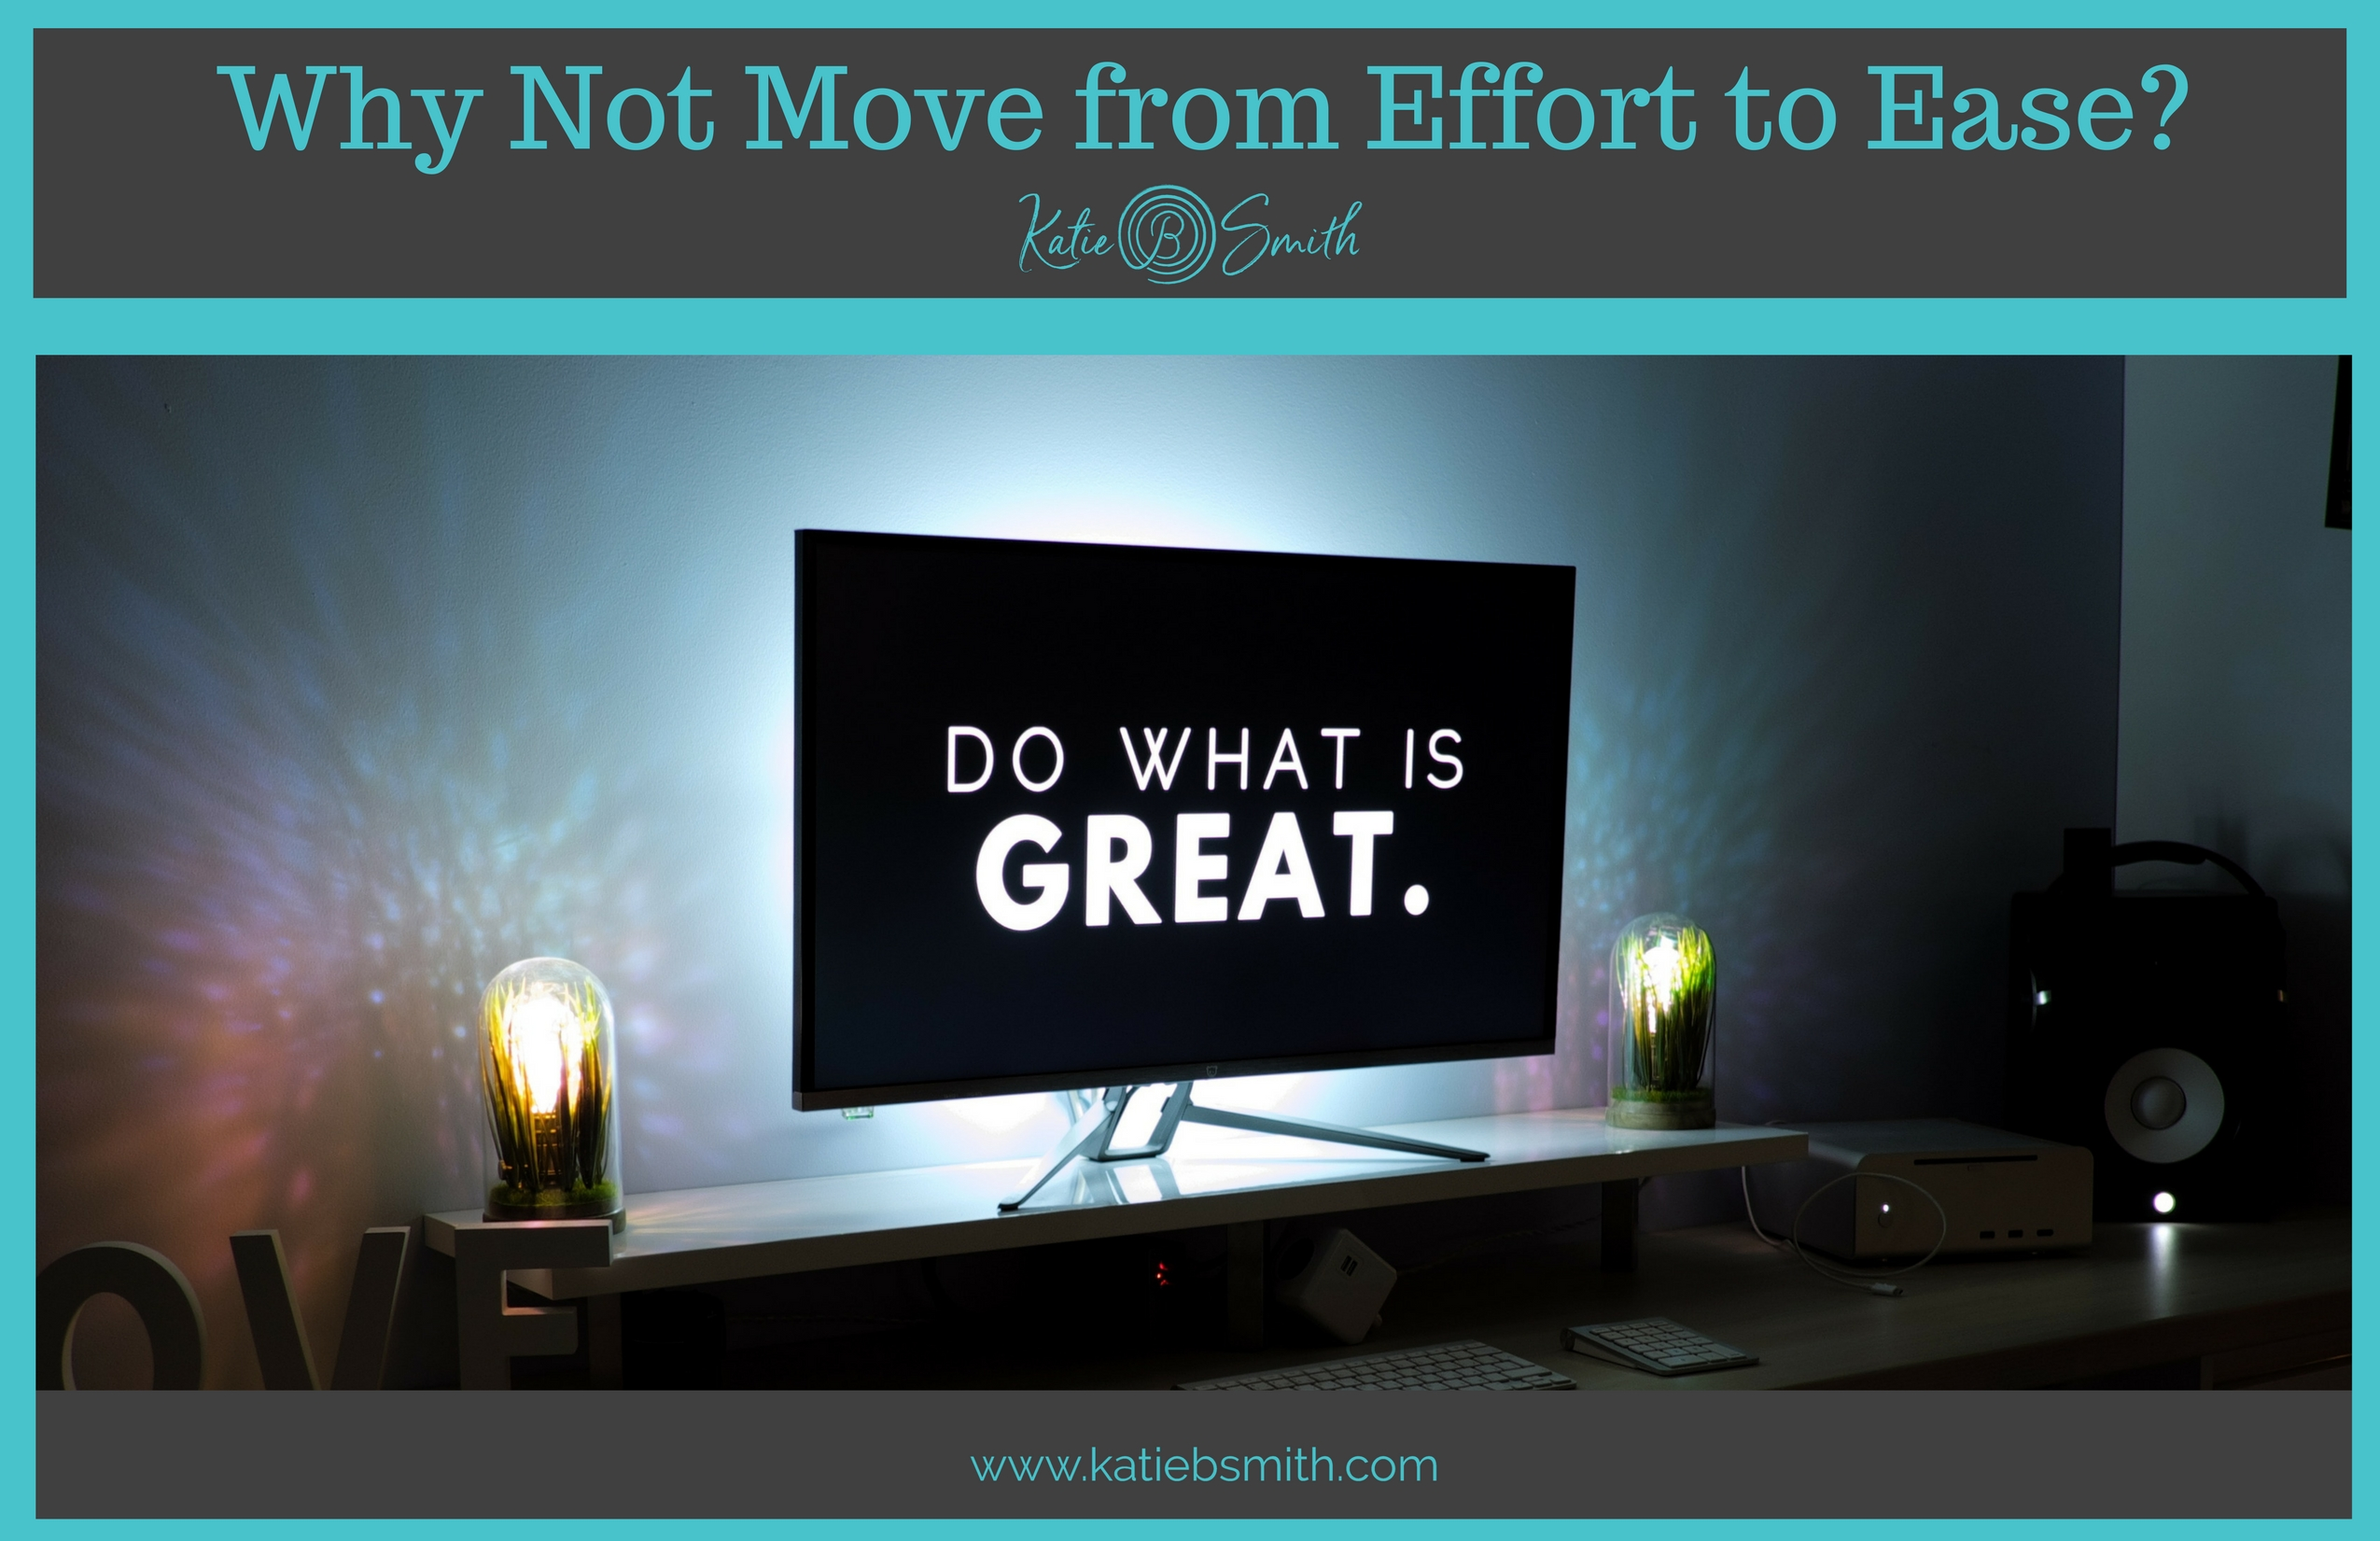 Why Not Move from Effort to Ease?